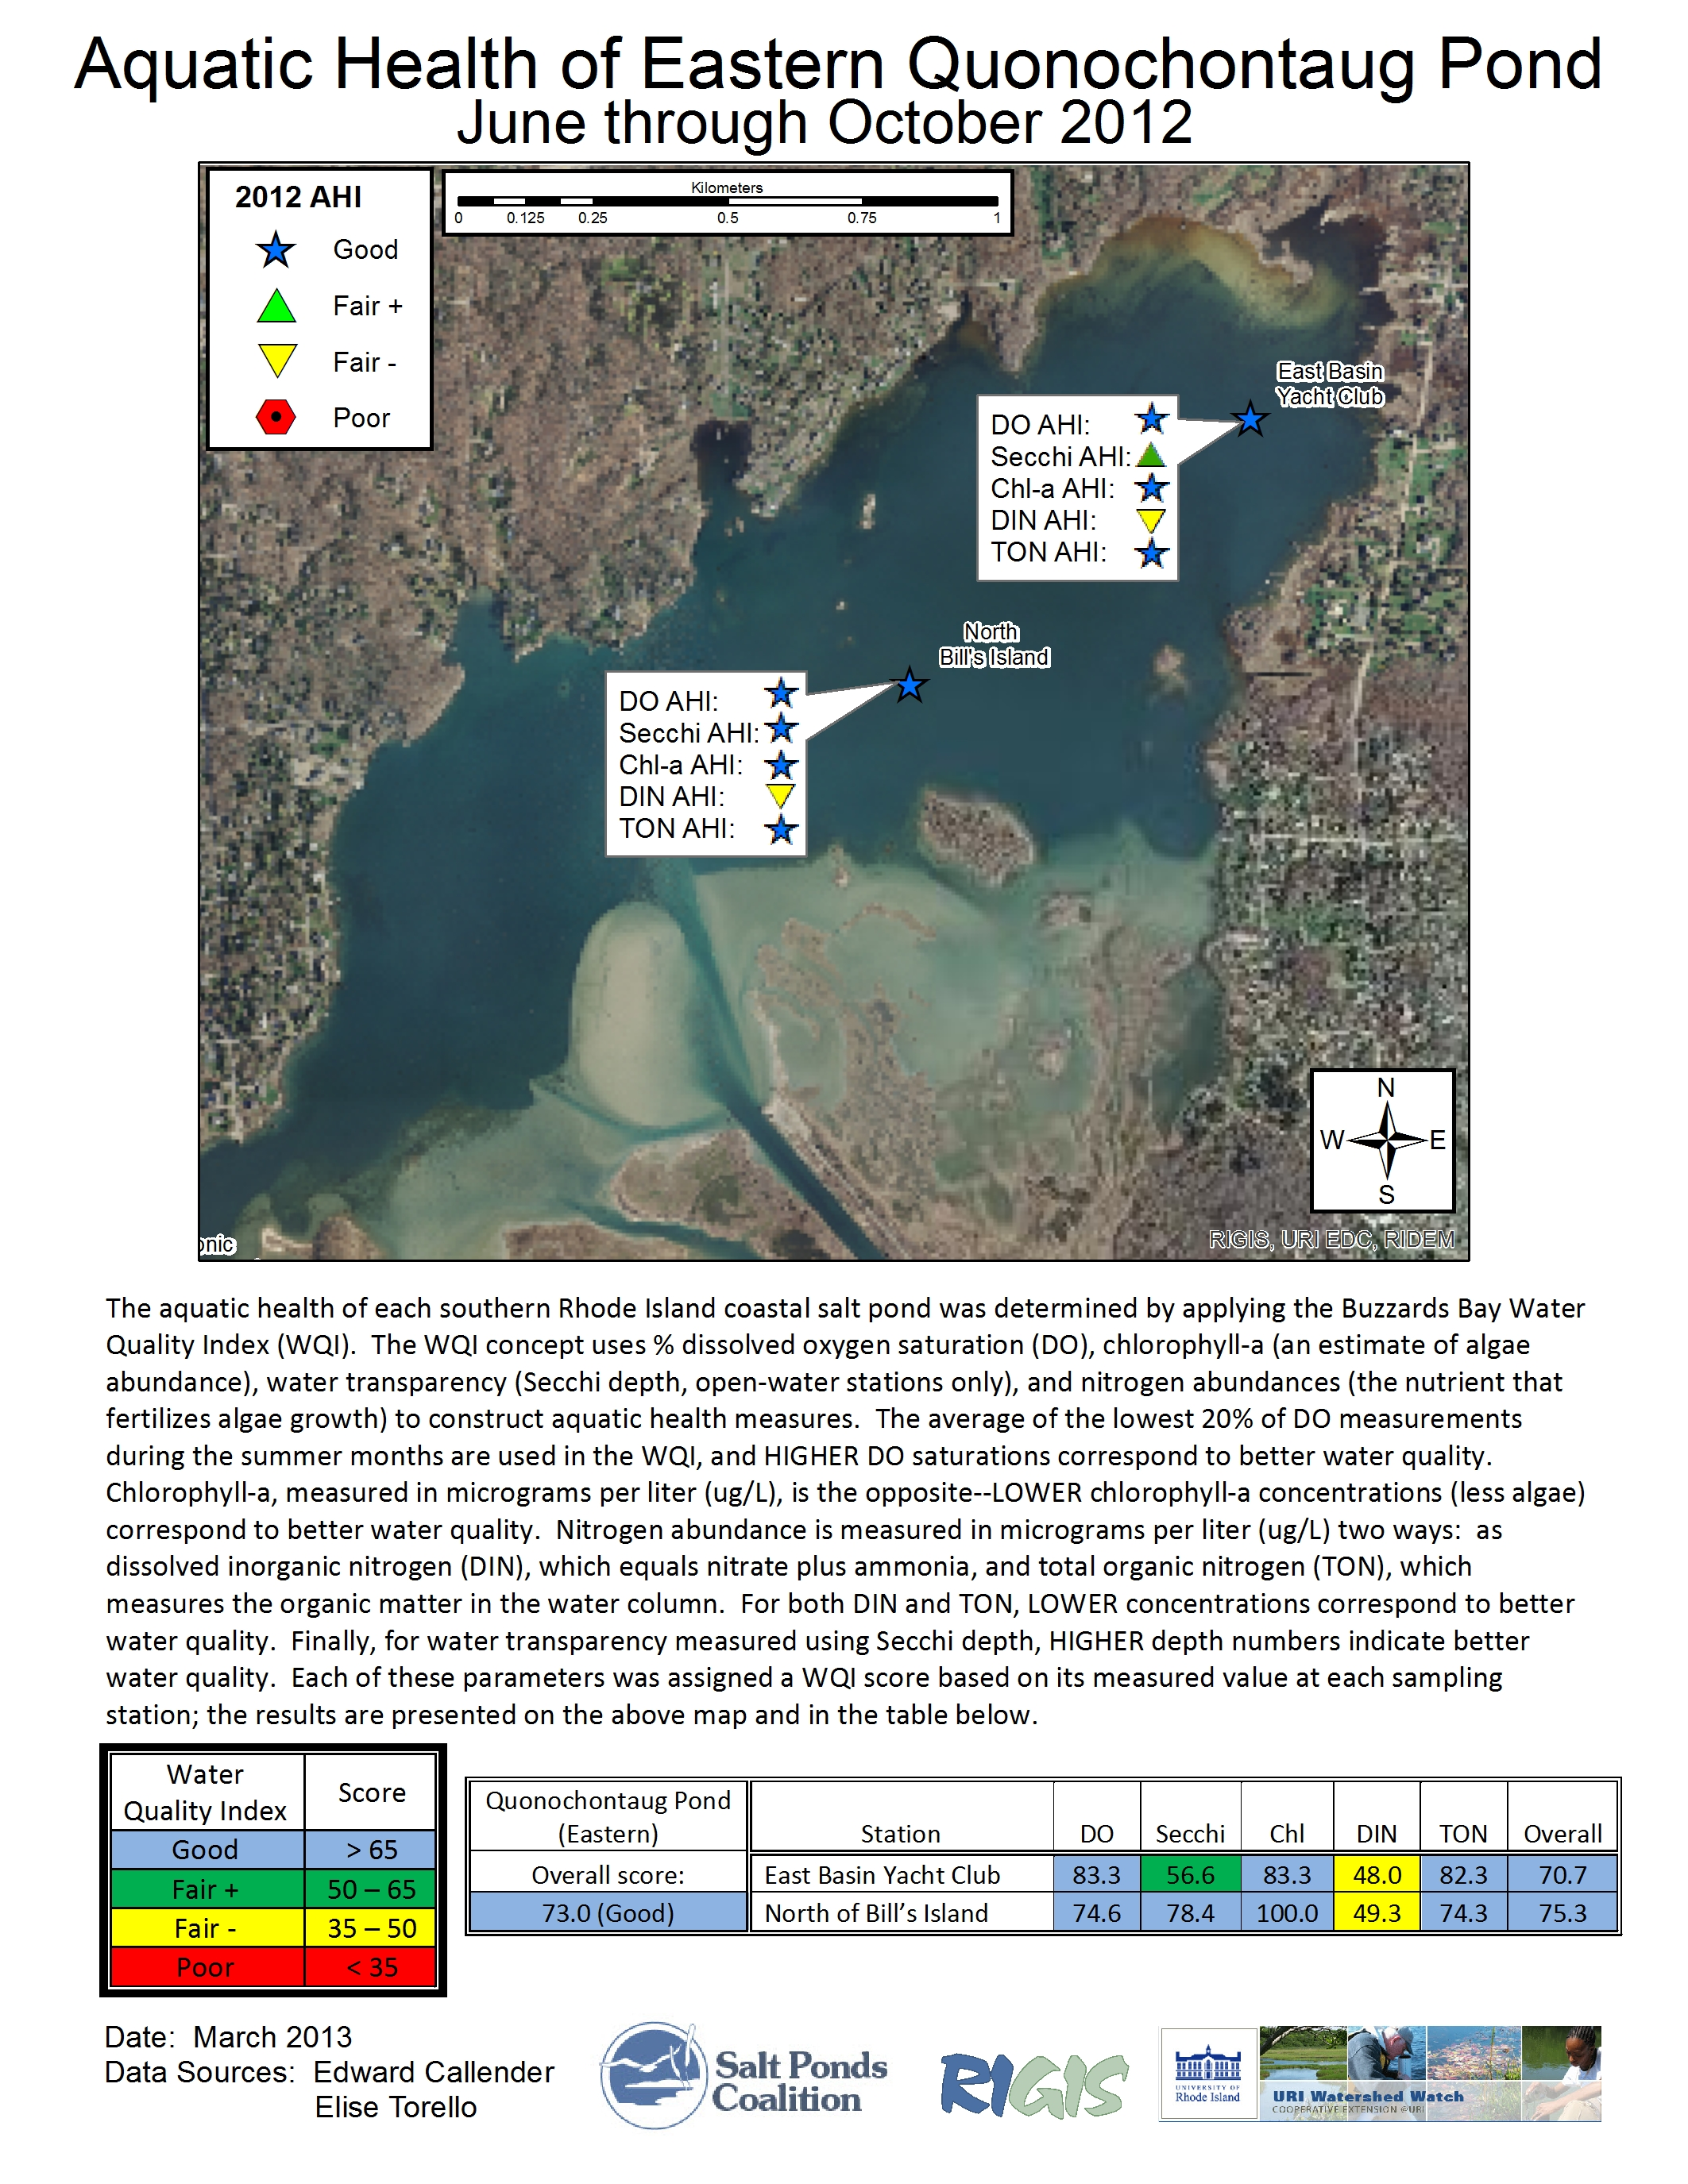 Quonochontaug pond 2012 eastern pond aquatic health index map nvjuhfo Images